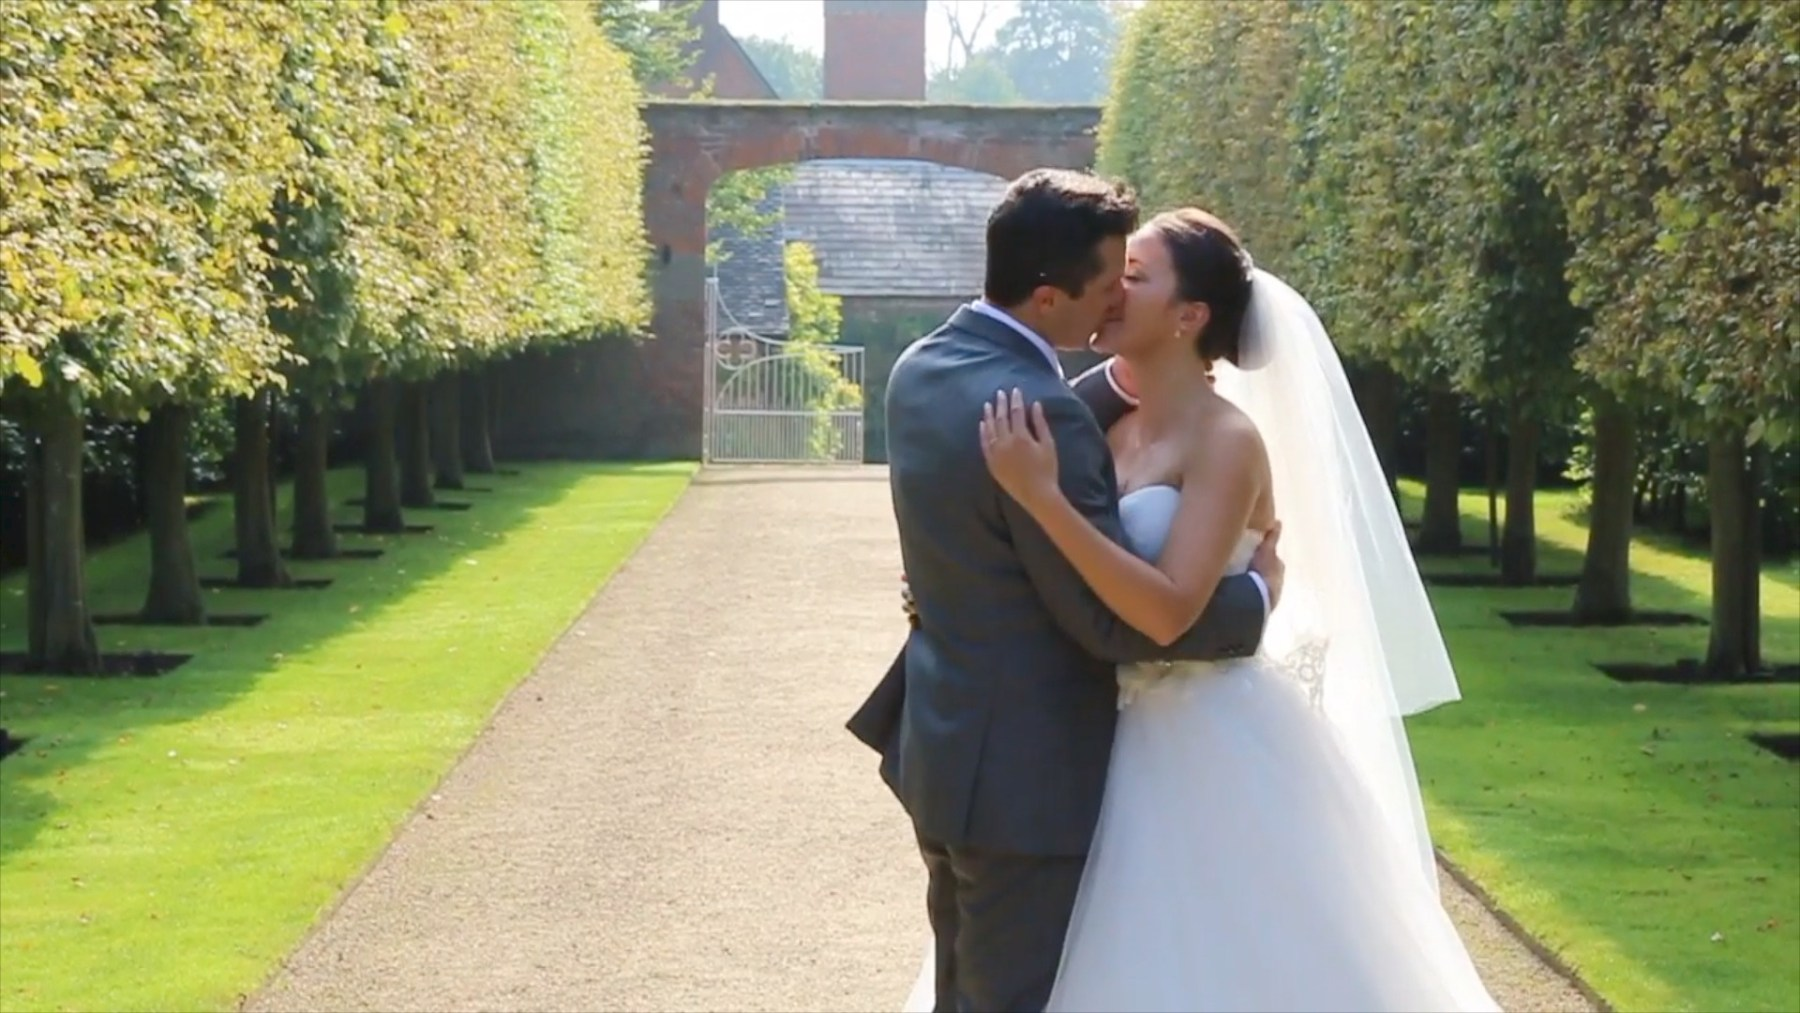 Bride and Groom kissing after wedding at Combermere Abbey in Cheshire